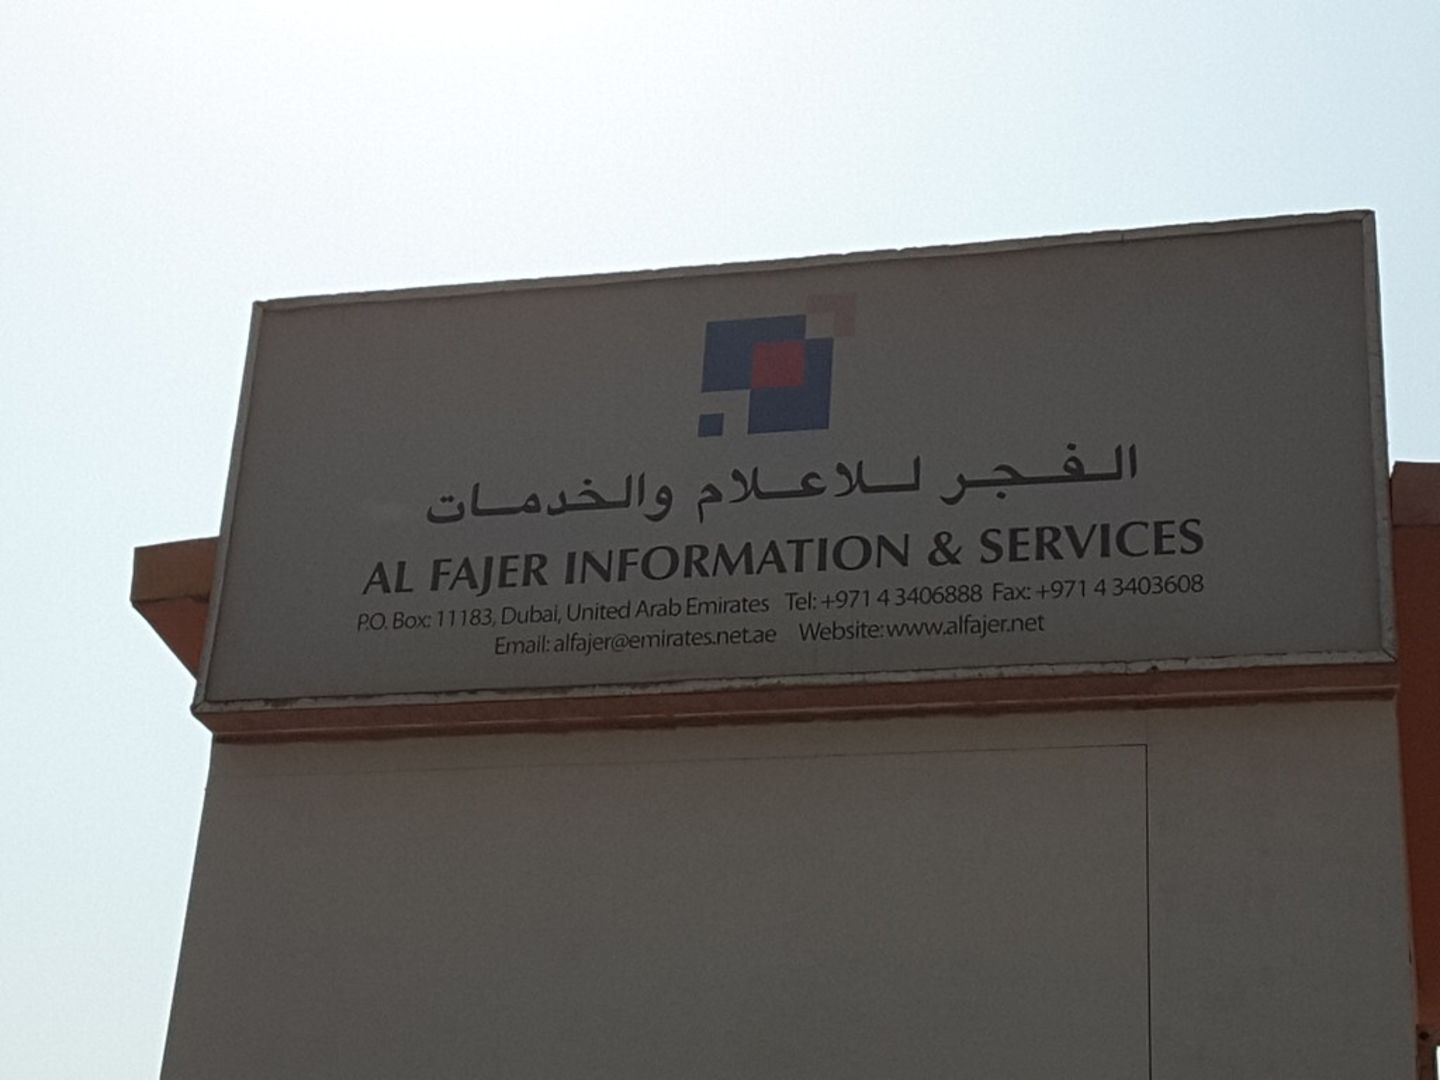 Walif-business-al-fajer-information-services